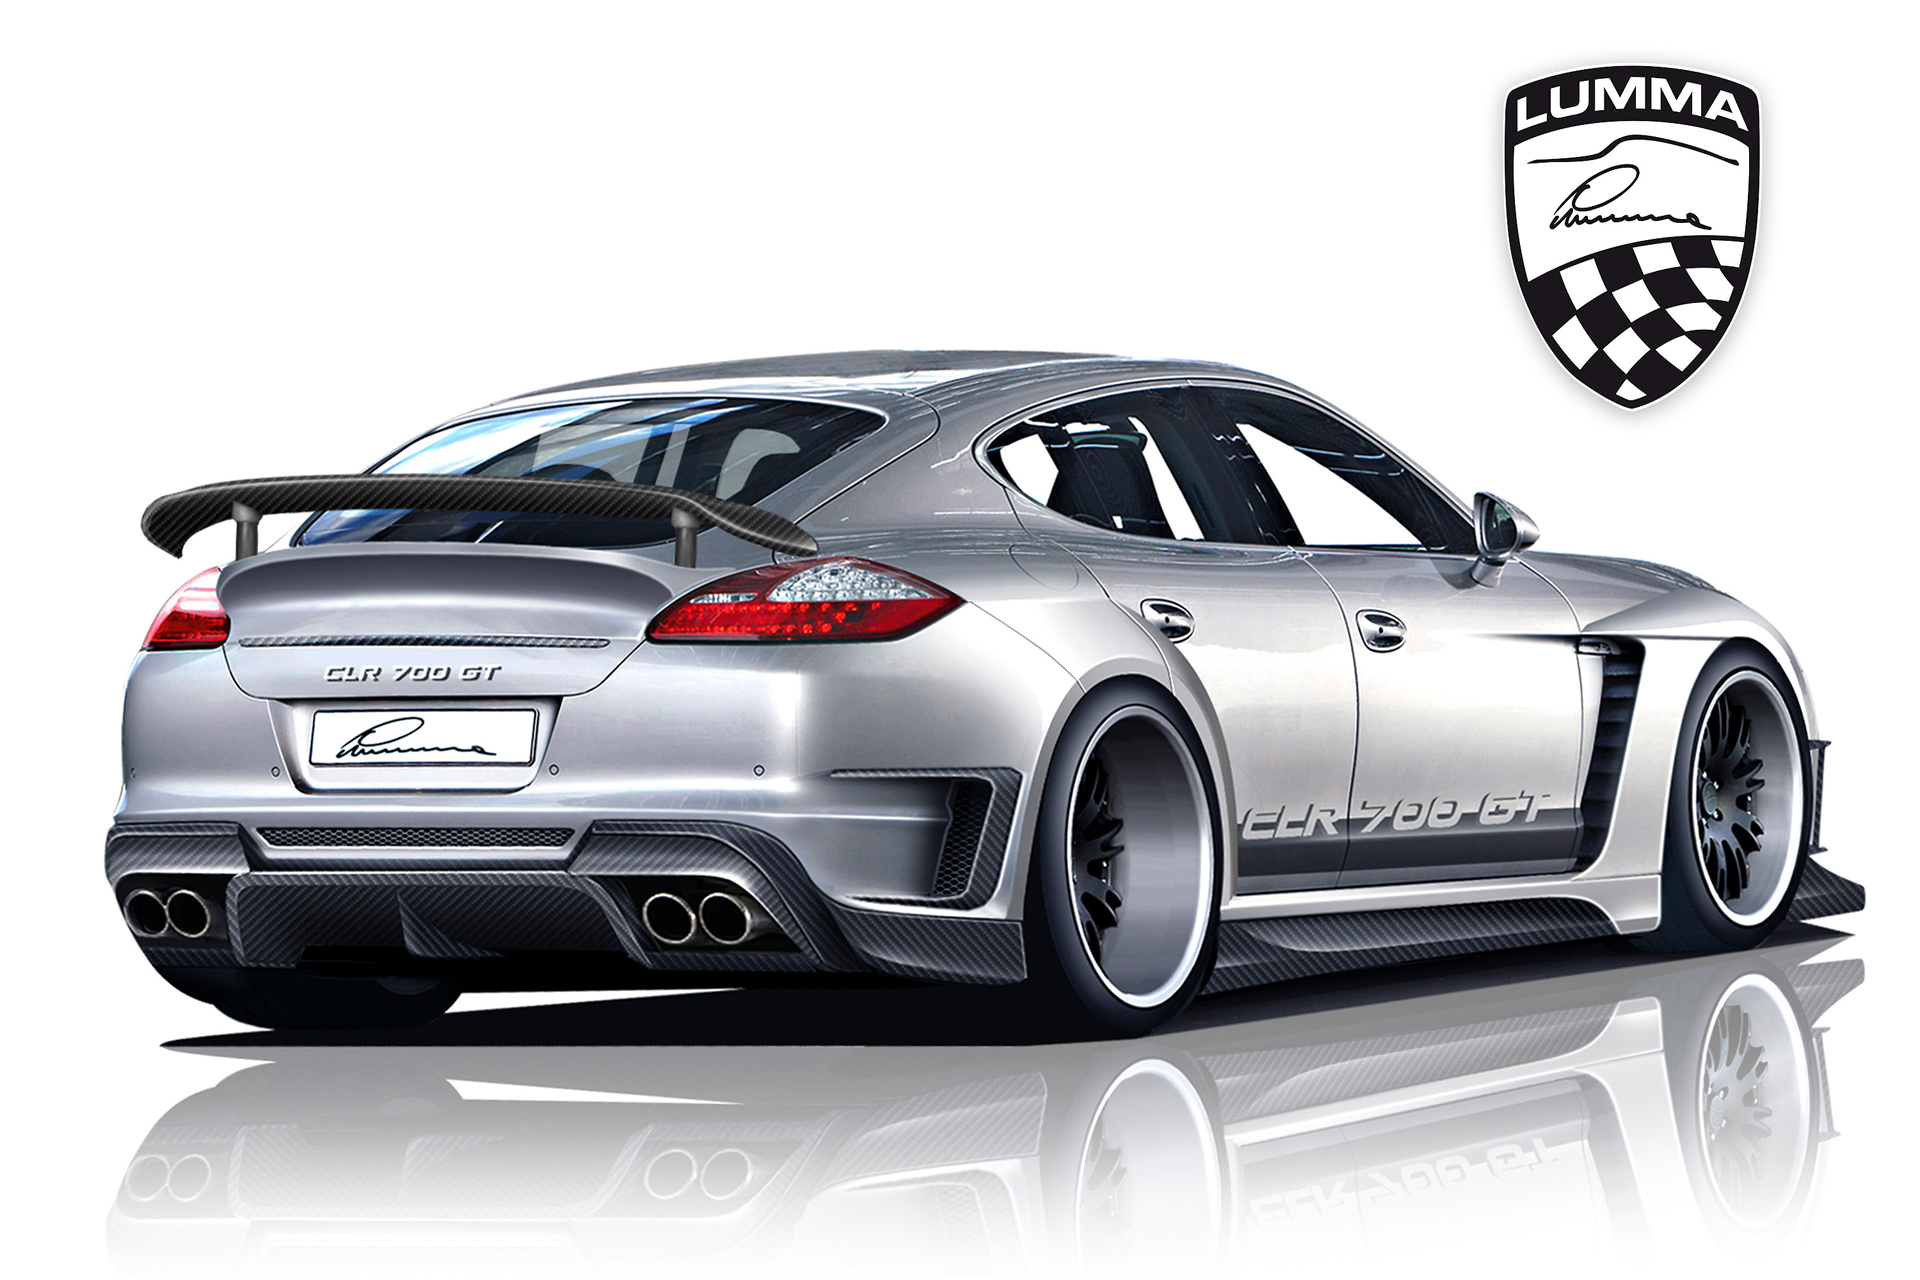 You can vote for this Lumma Porsche Panamera CLR 700 GT photo